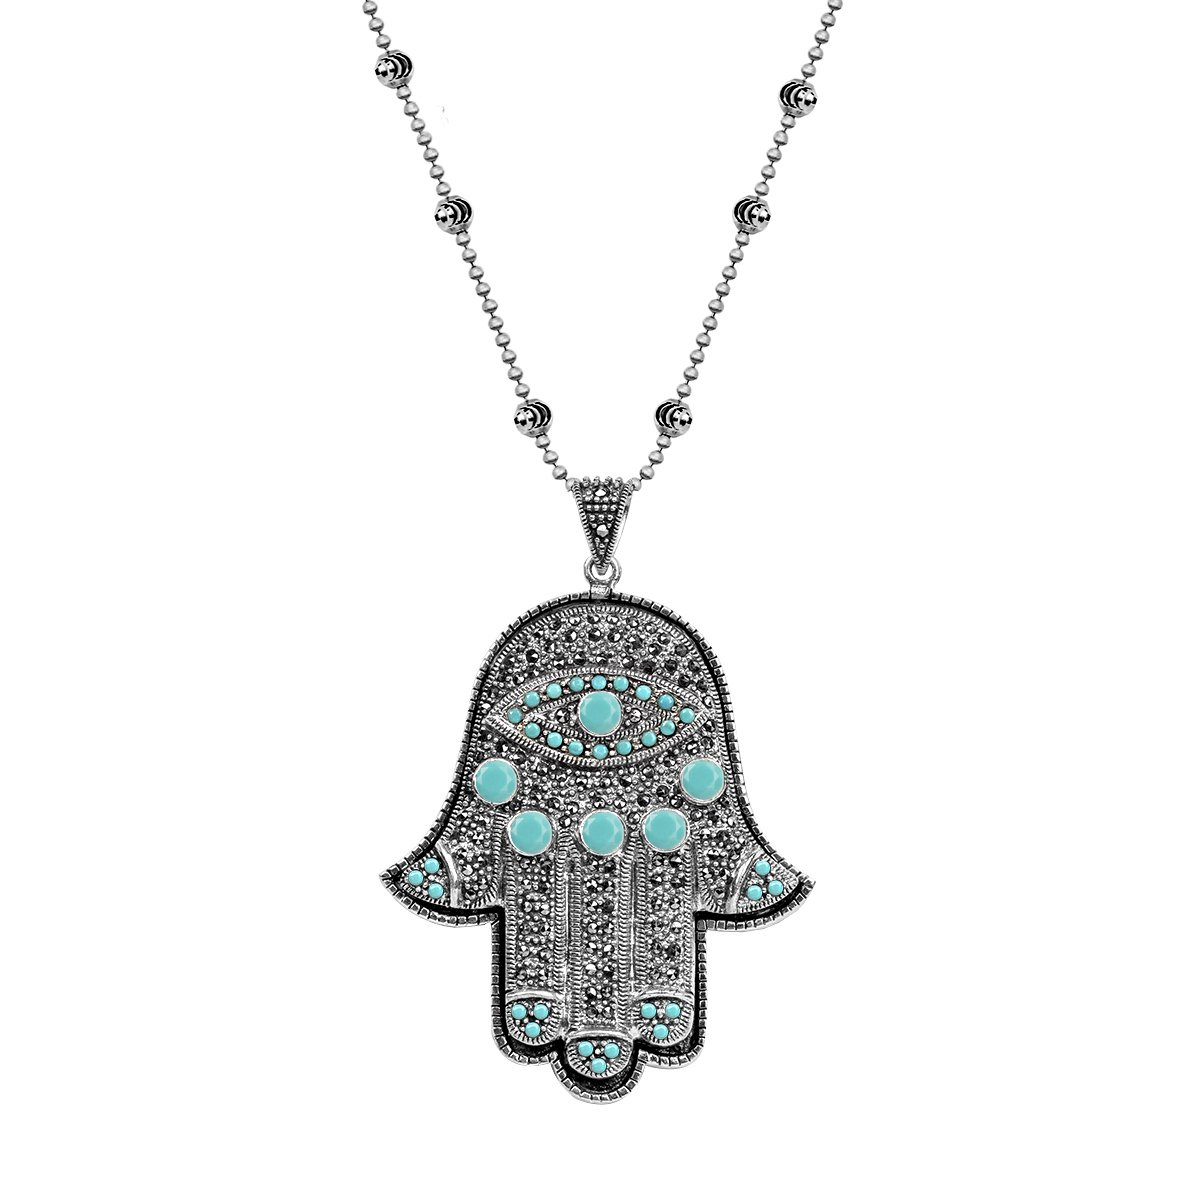 MINDFUL PERSPECTIVE - TURQUOISE HAMSA PENDANT NECKLACE